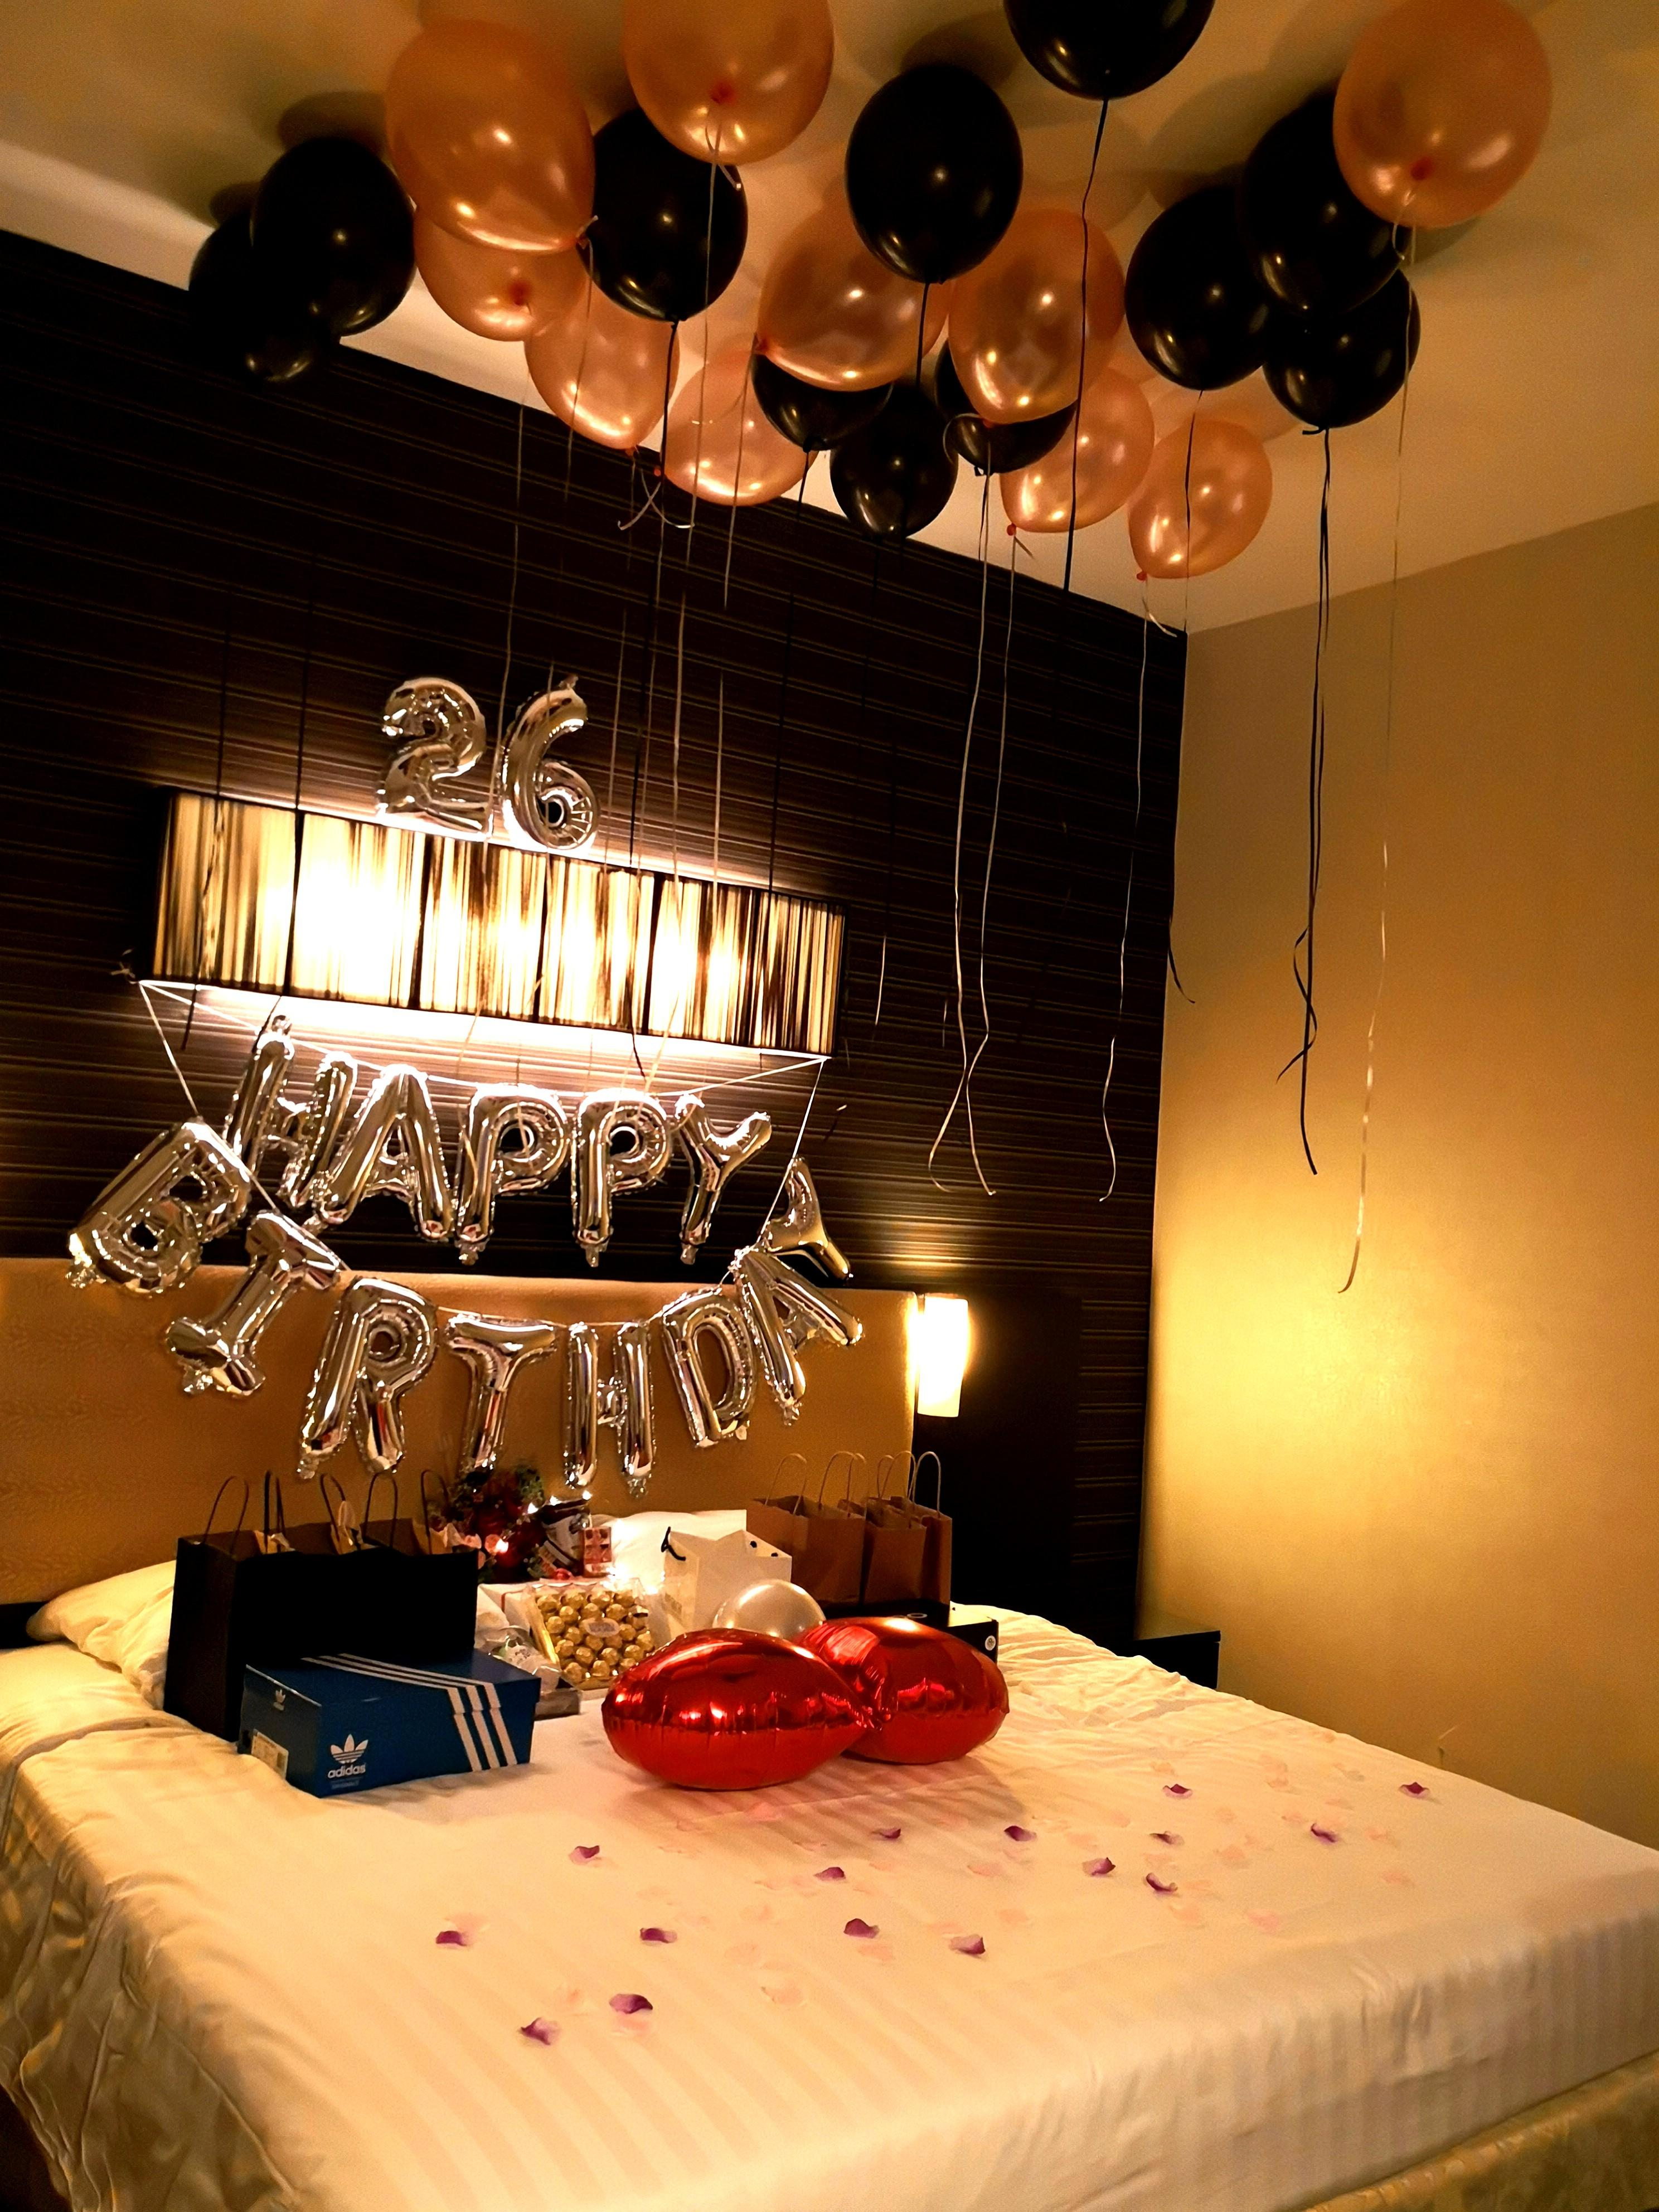 Decorate Hotel Room Romantic Ideas: Decorated Hotel Rooms For Birthday